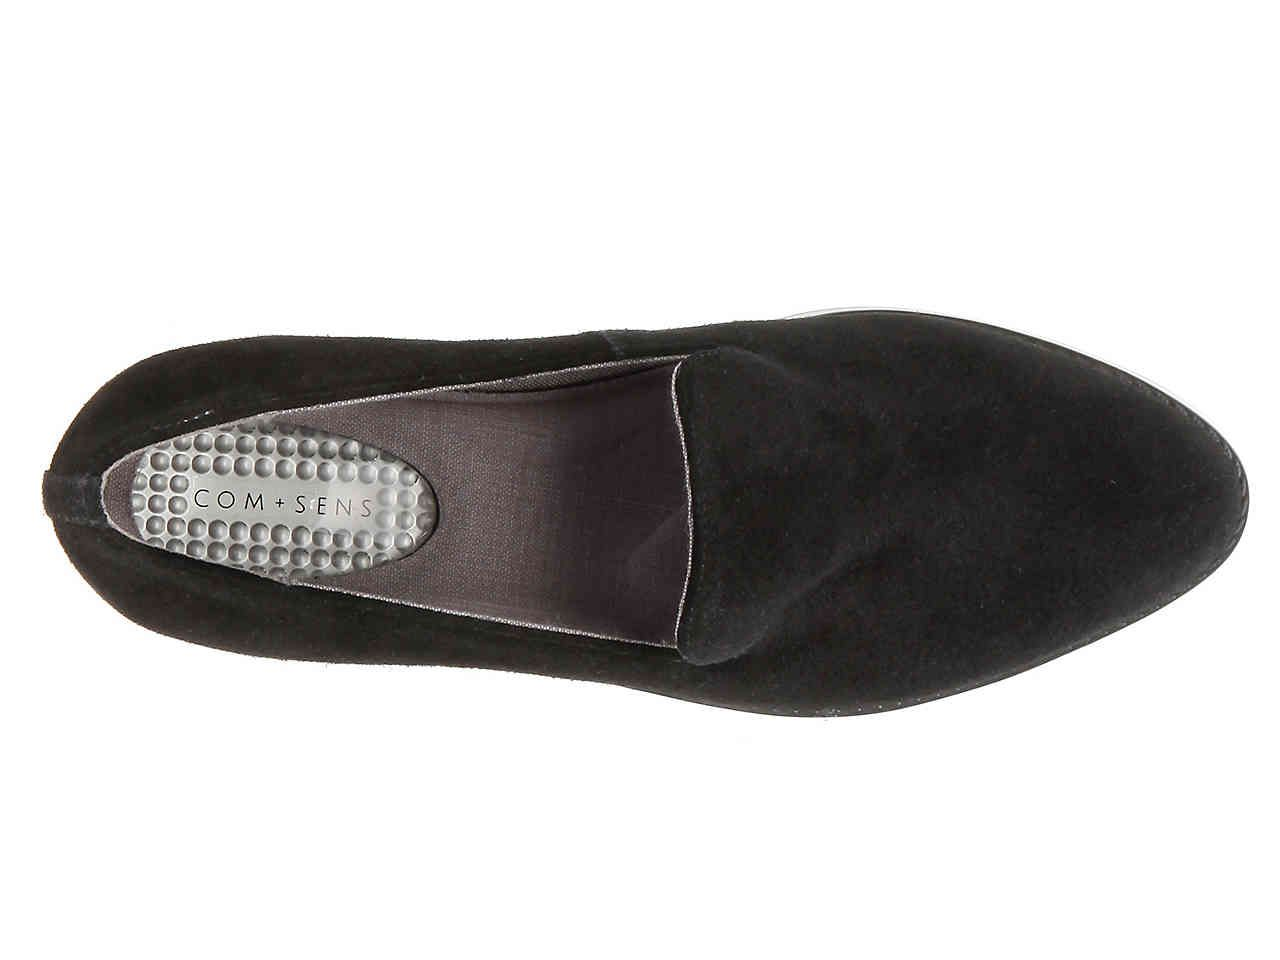 Com Sens Shebby Wedge Loafer Wedge Loafers Loafers Loafers For Women